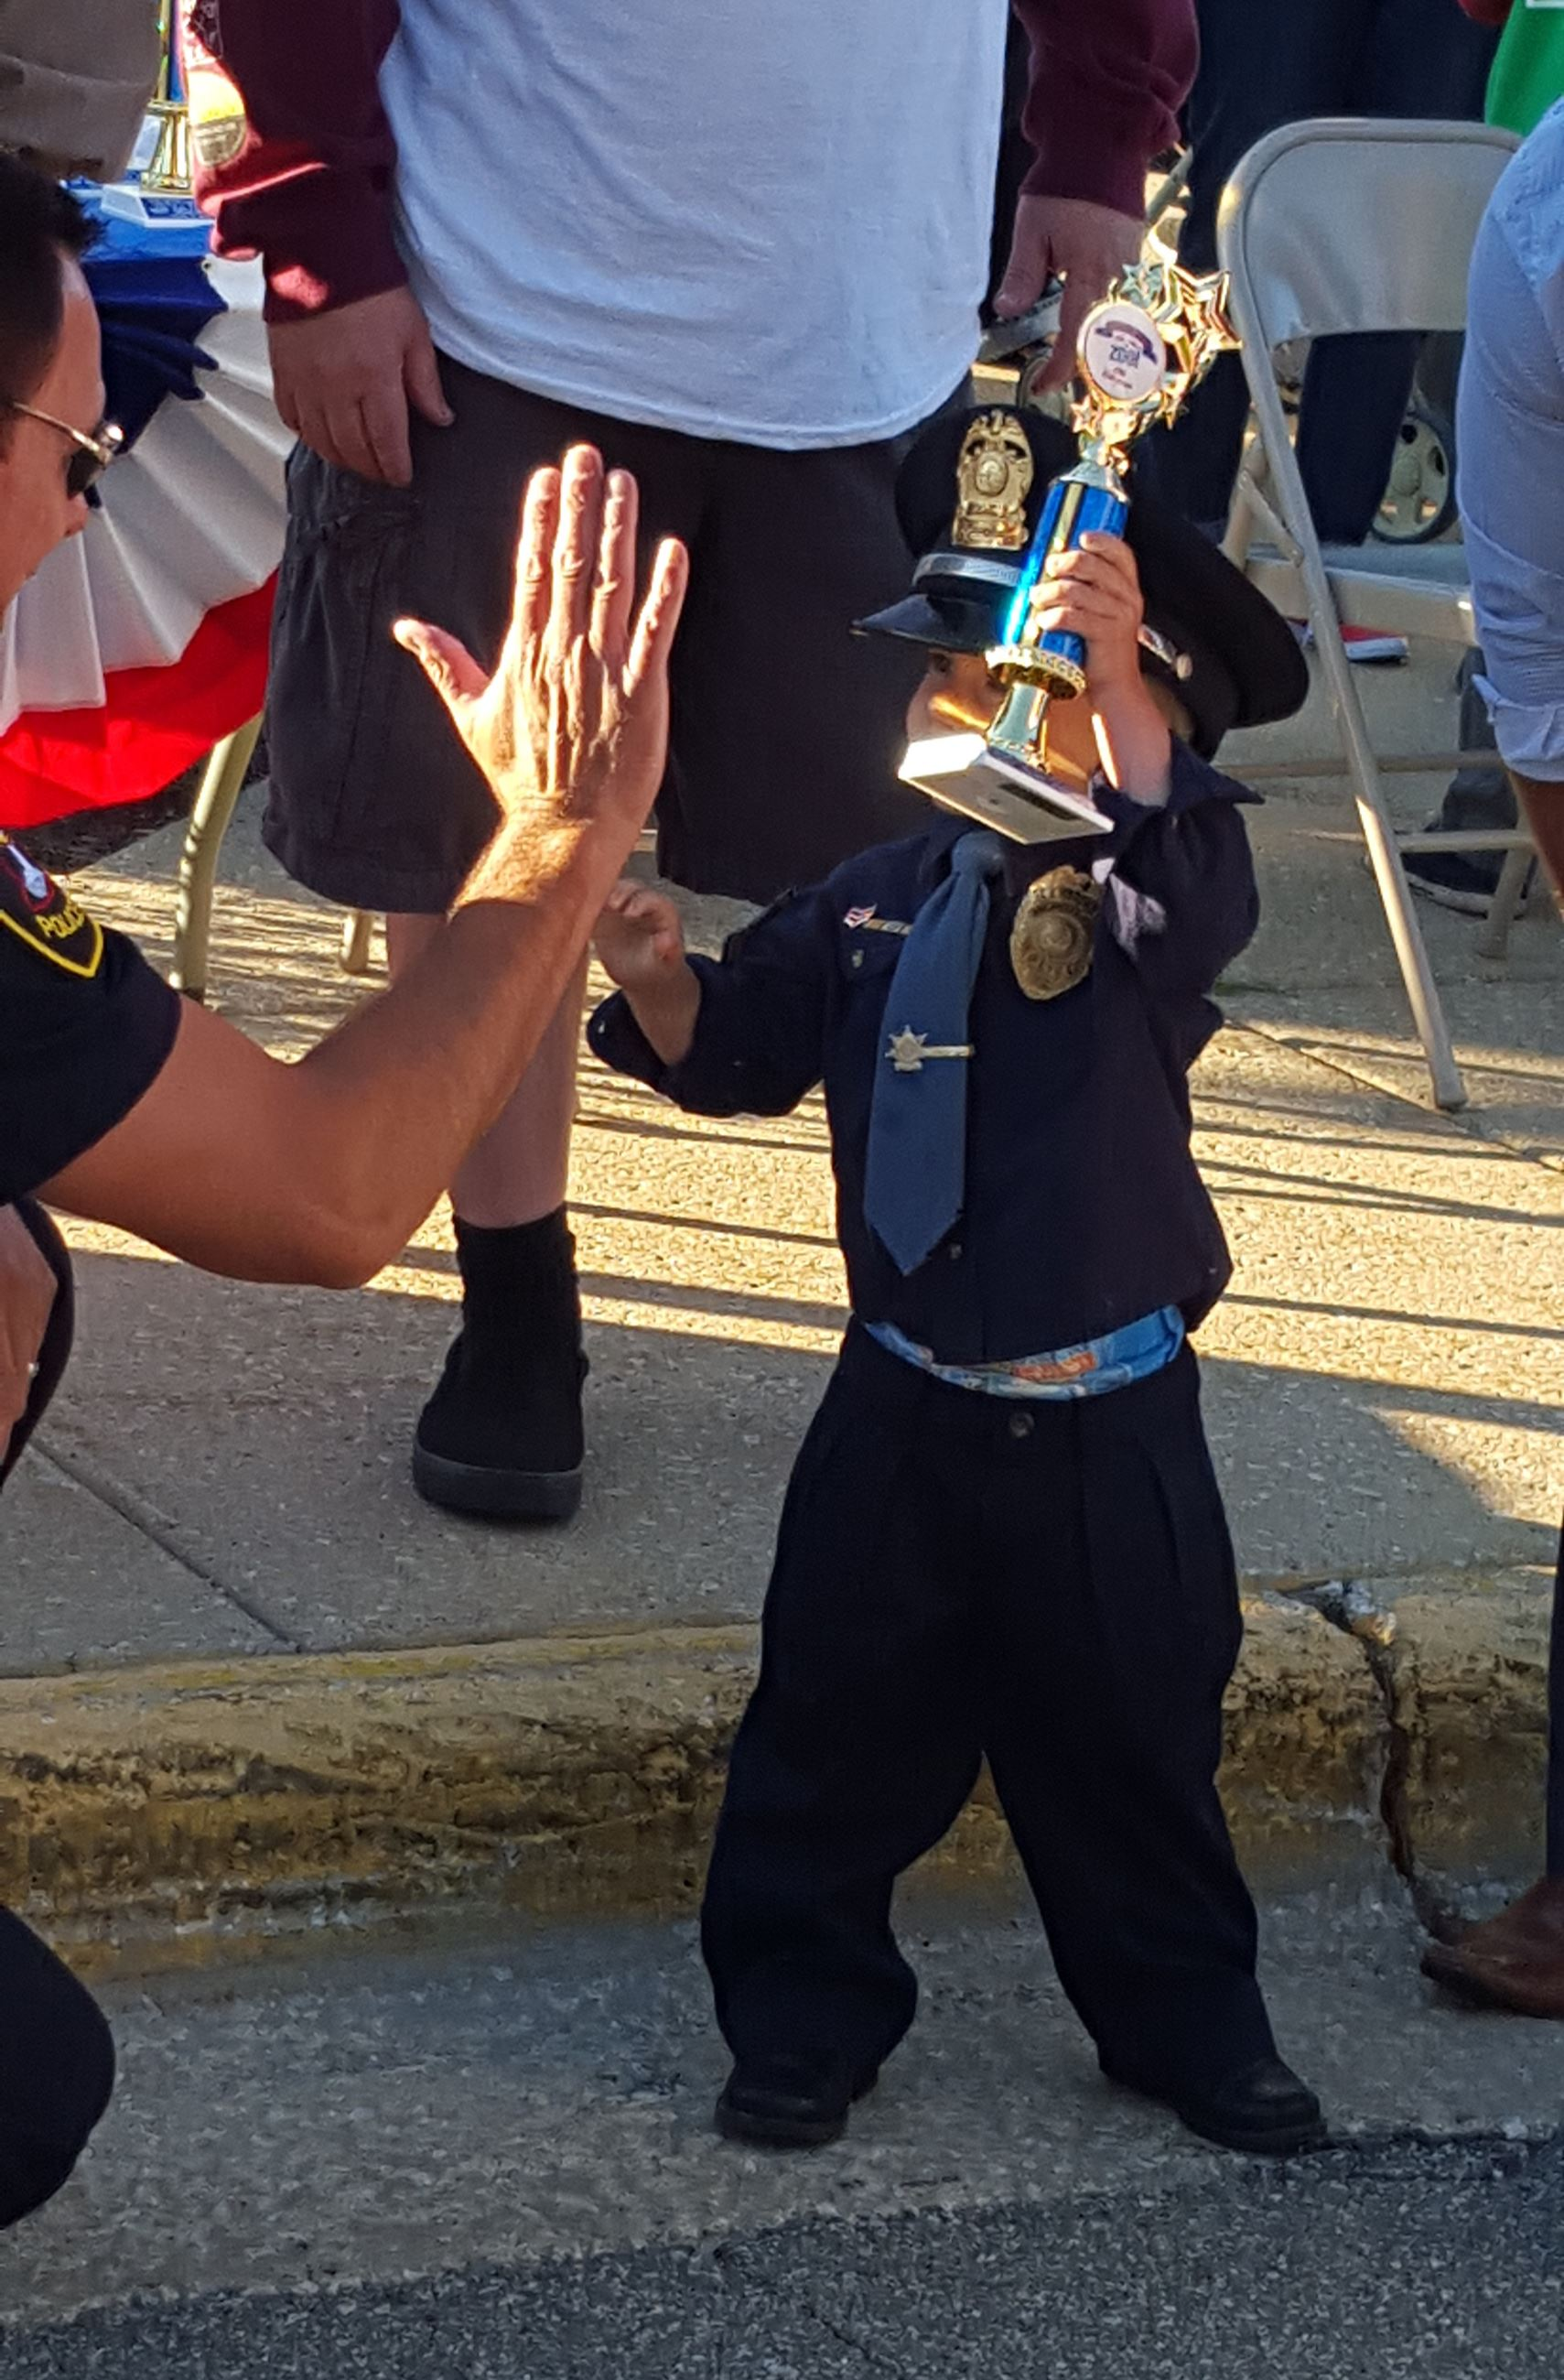 Little police officer gets a trophy from Chief Swistek in the Kiddie Parade